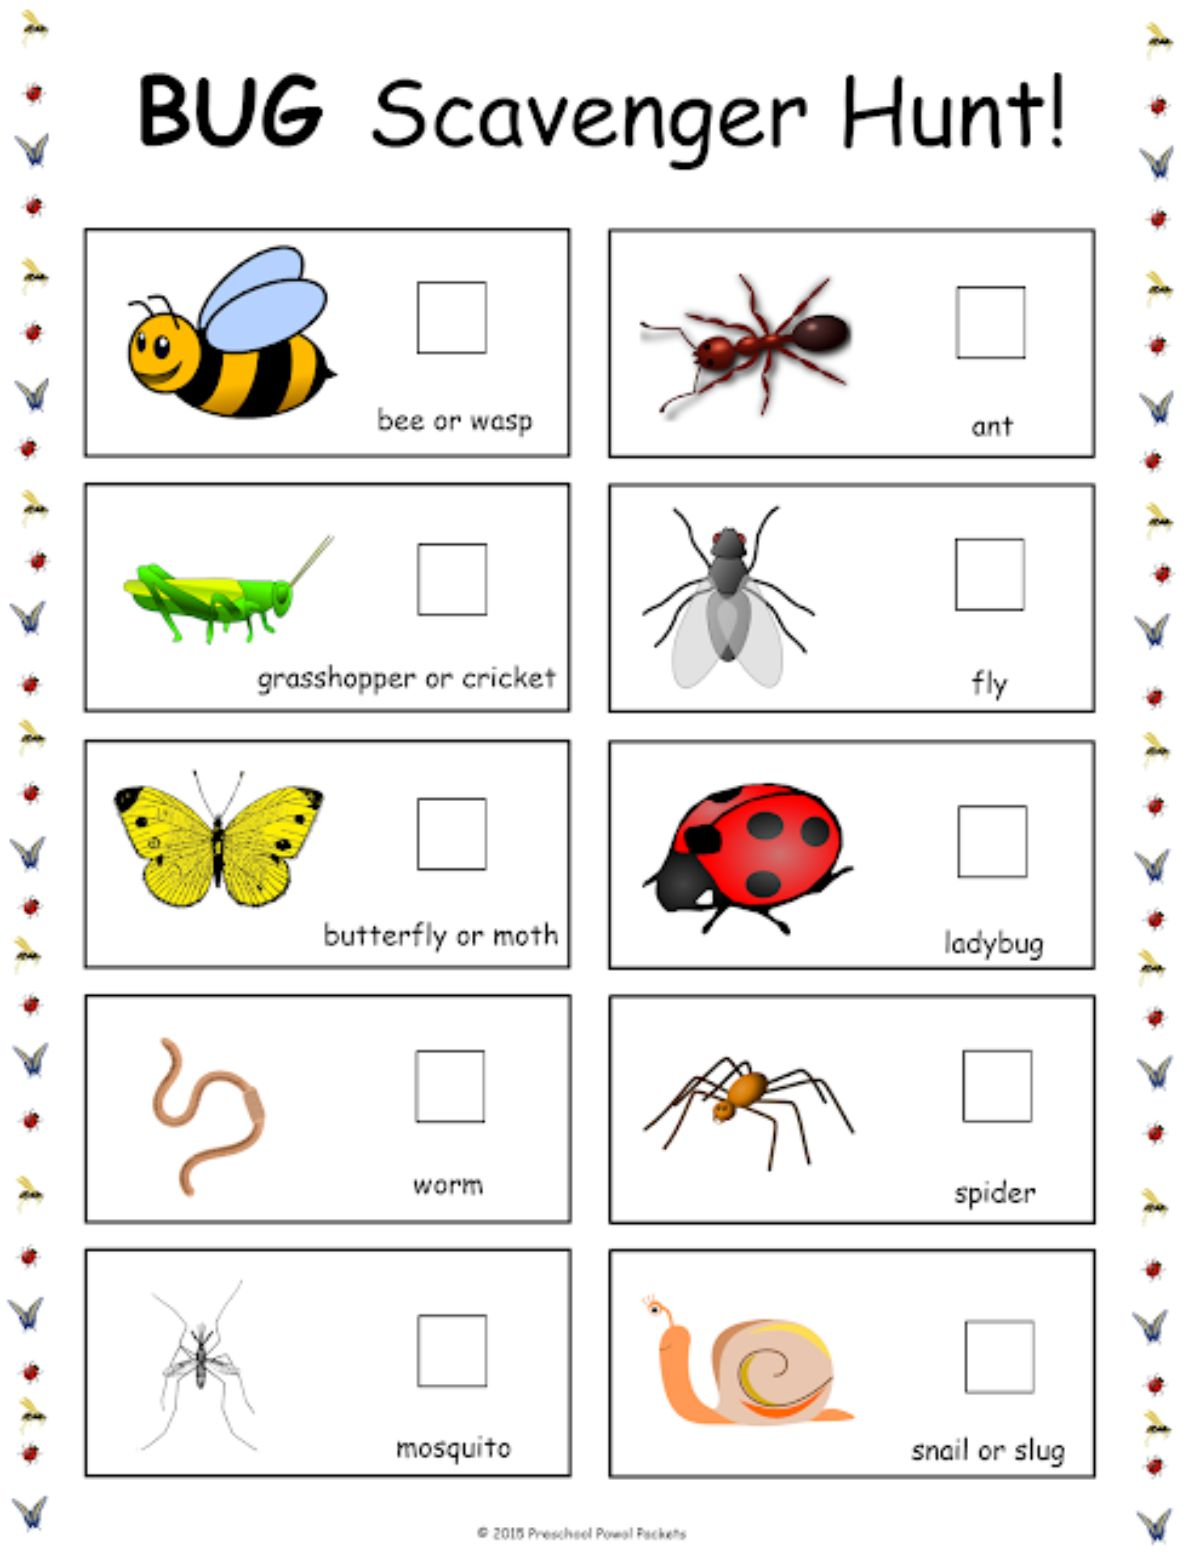 a shot of a bug scavenger hunt sheet. cartoon images of bugs can be seen next to check boxes.